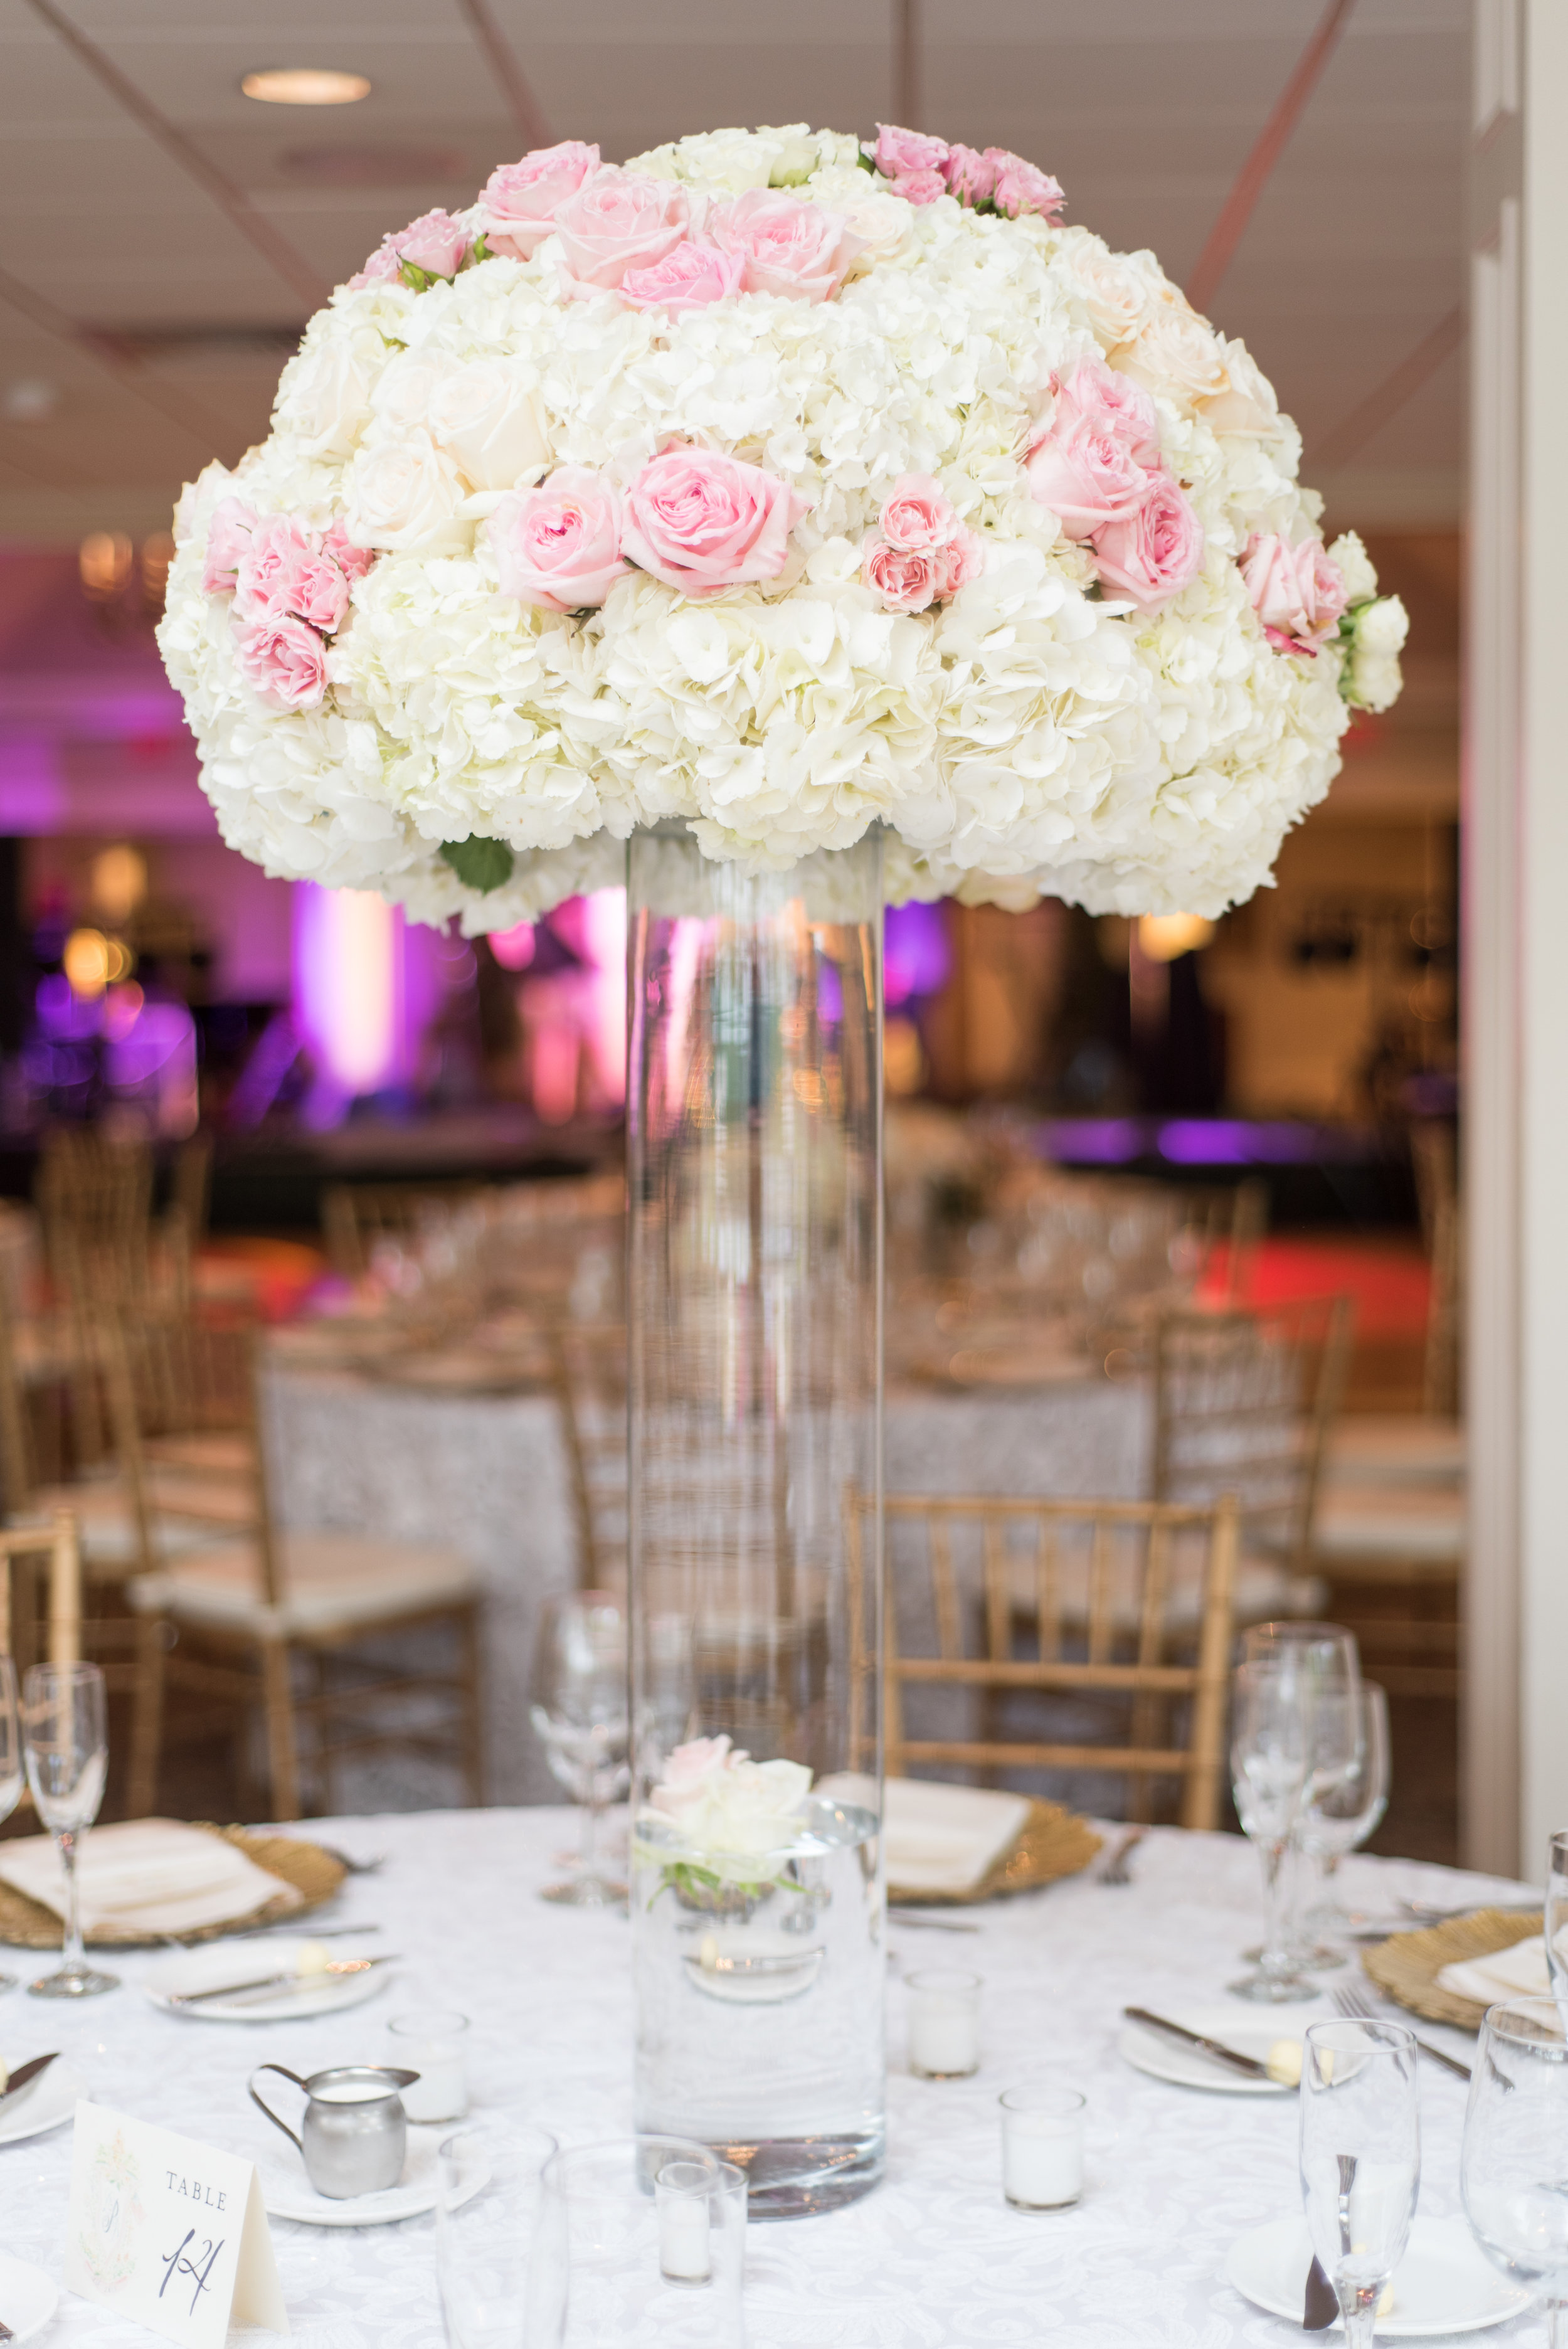 Tall Floral Arrangement with Hydrangea and Pink Roses.JPG